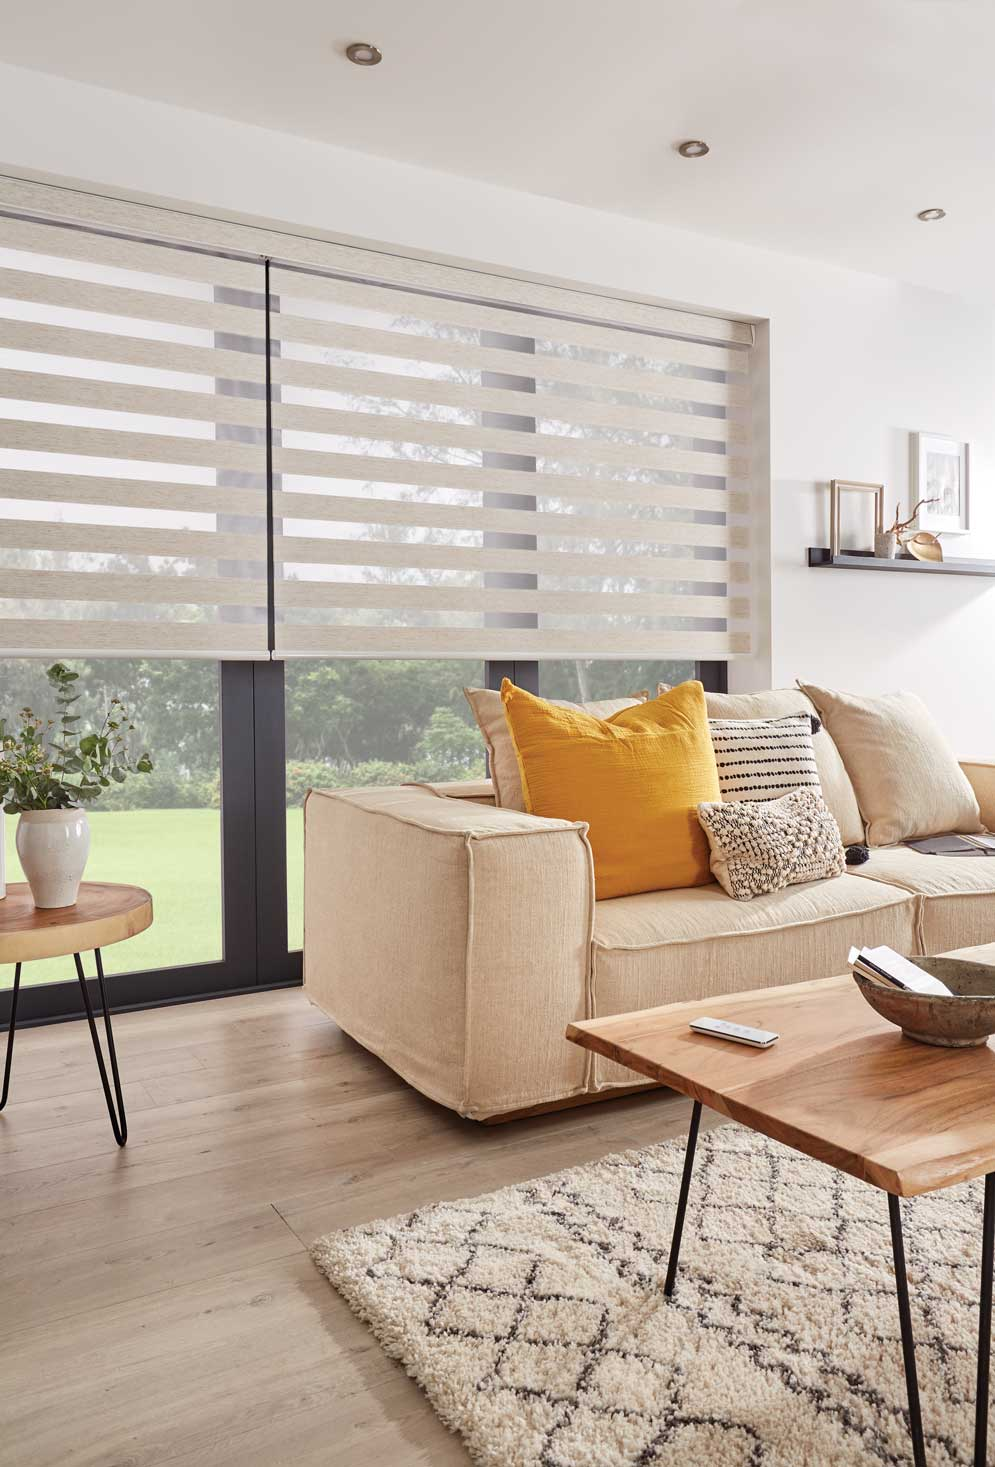 Lucca White Vision Blinds in a living room